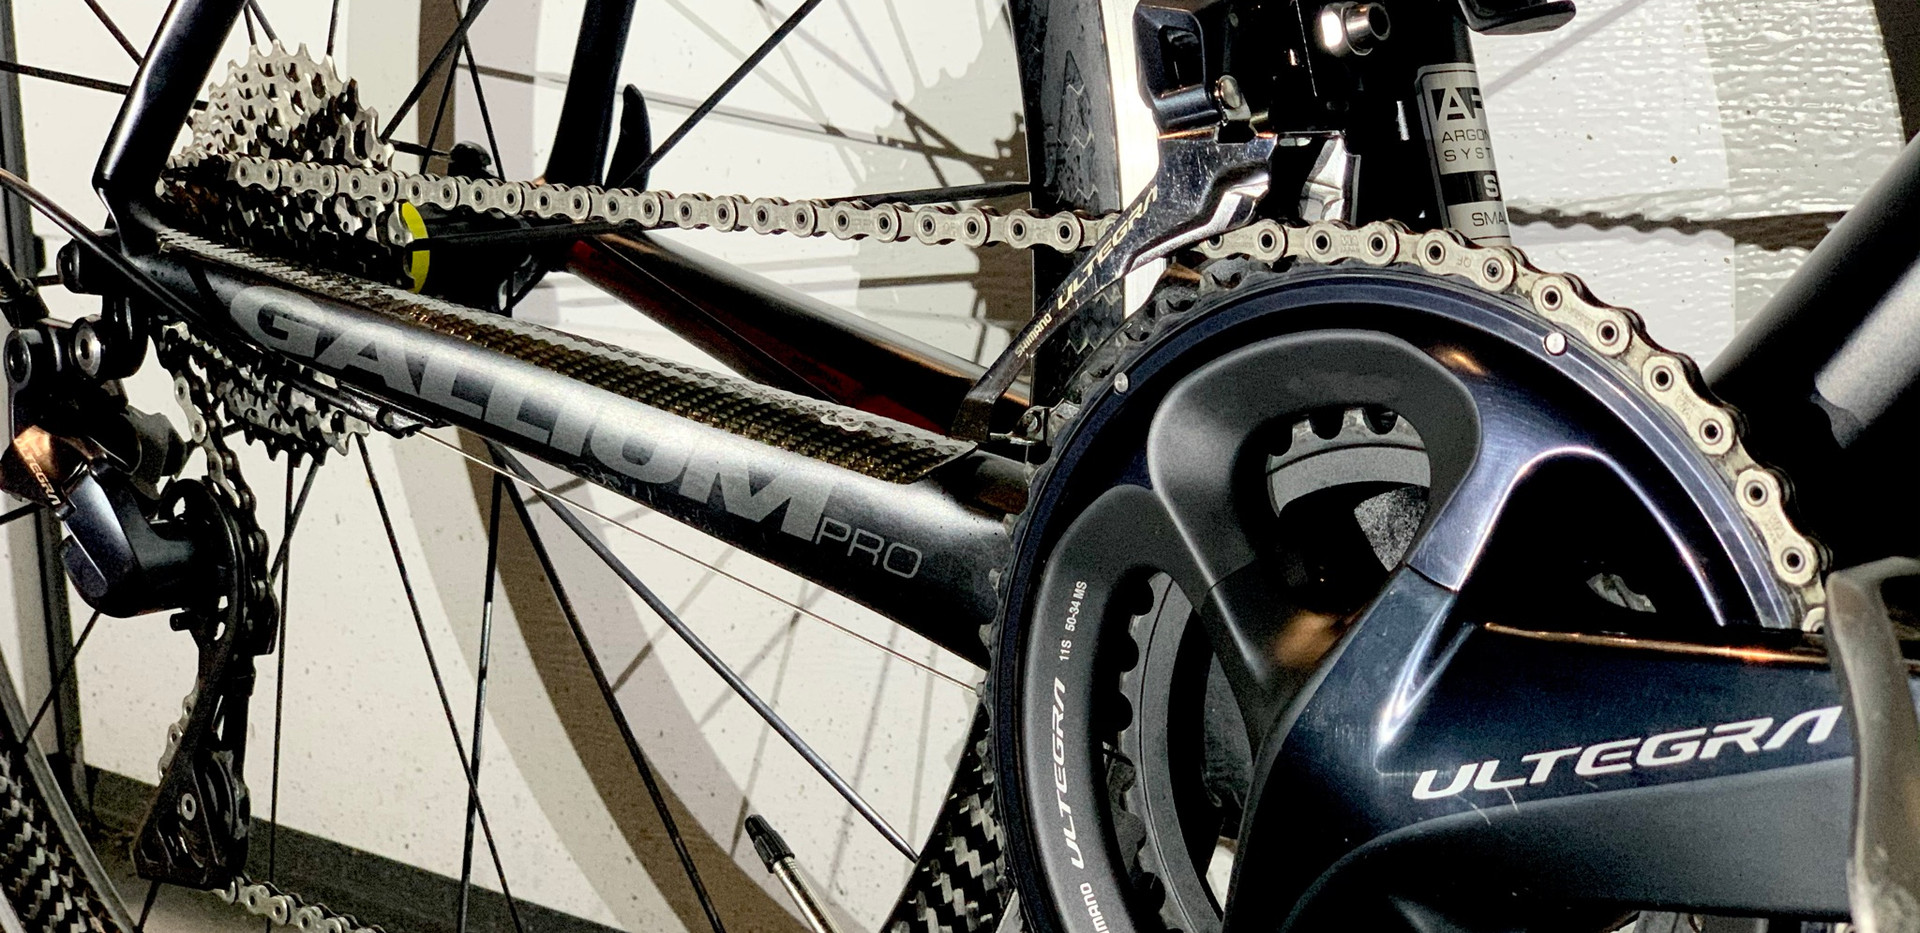 Detailed Shimano Ultegra